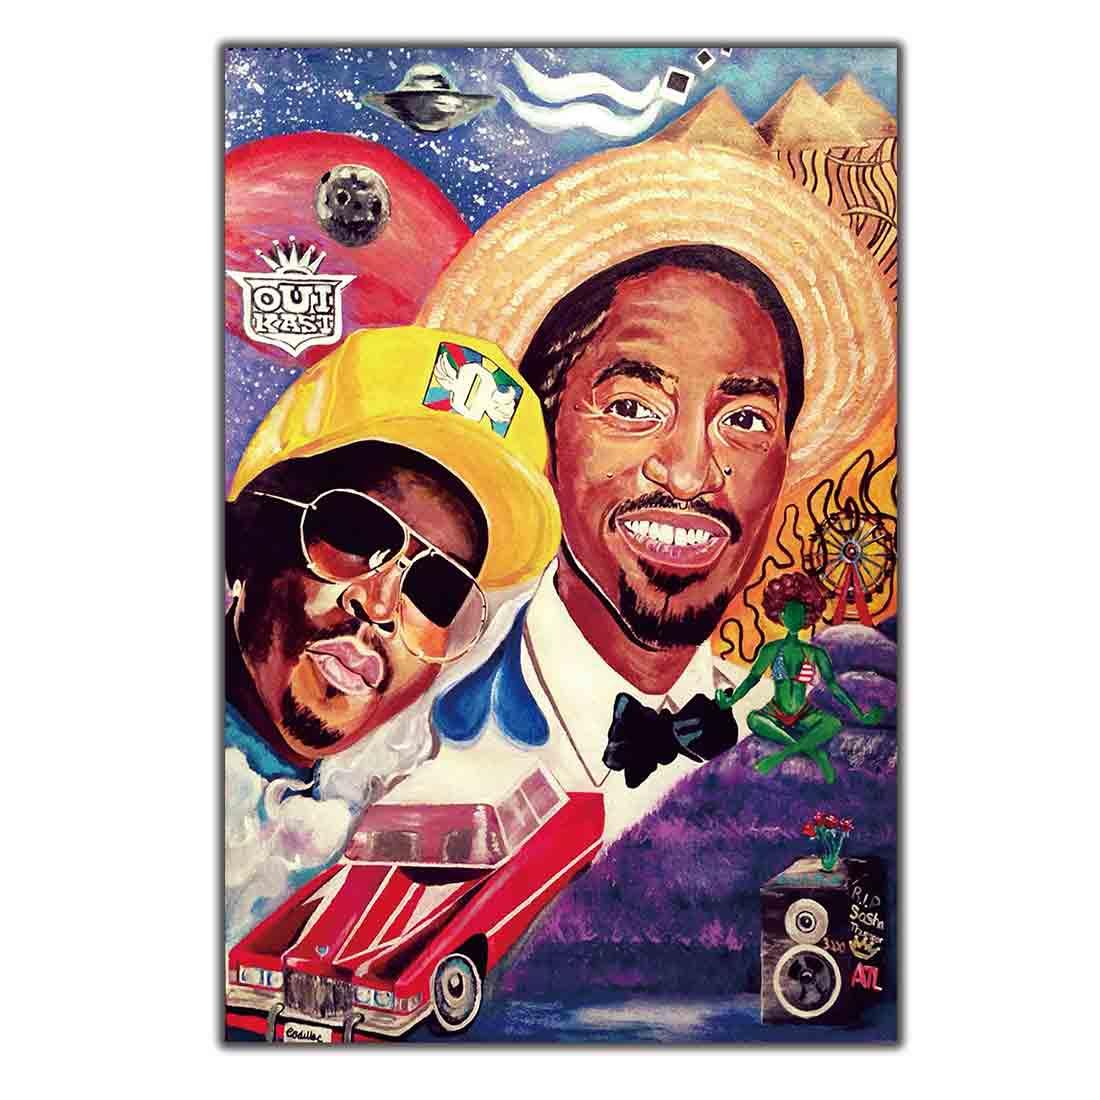 Silk Art Poster Print Home Wall decoration 8x12 12x18 24x36inch decor light canvas 2000 OUTKAST Stankonia Hip Hop Duo Album image